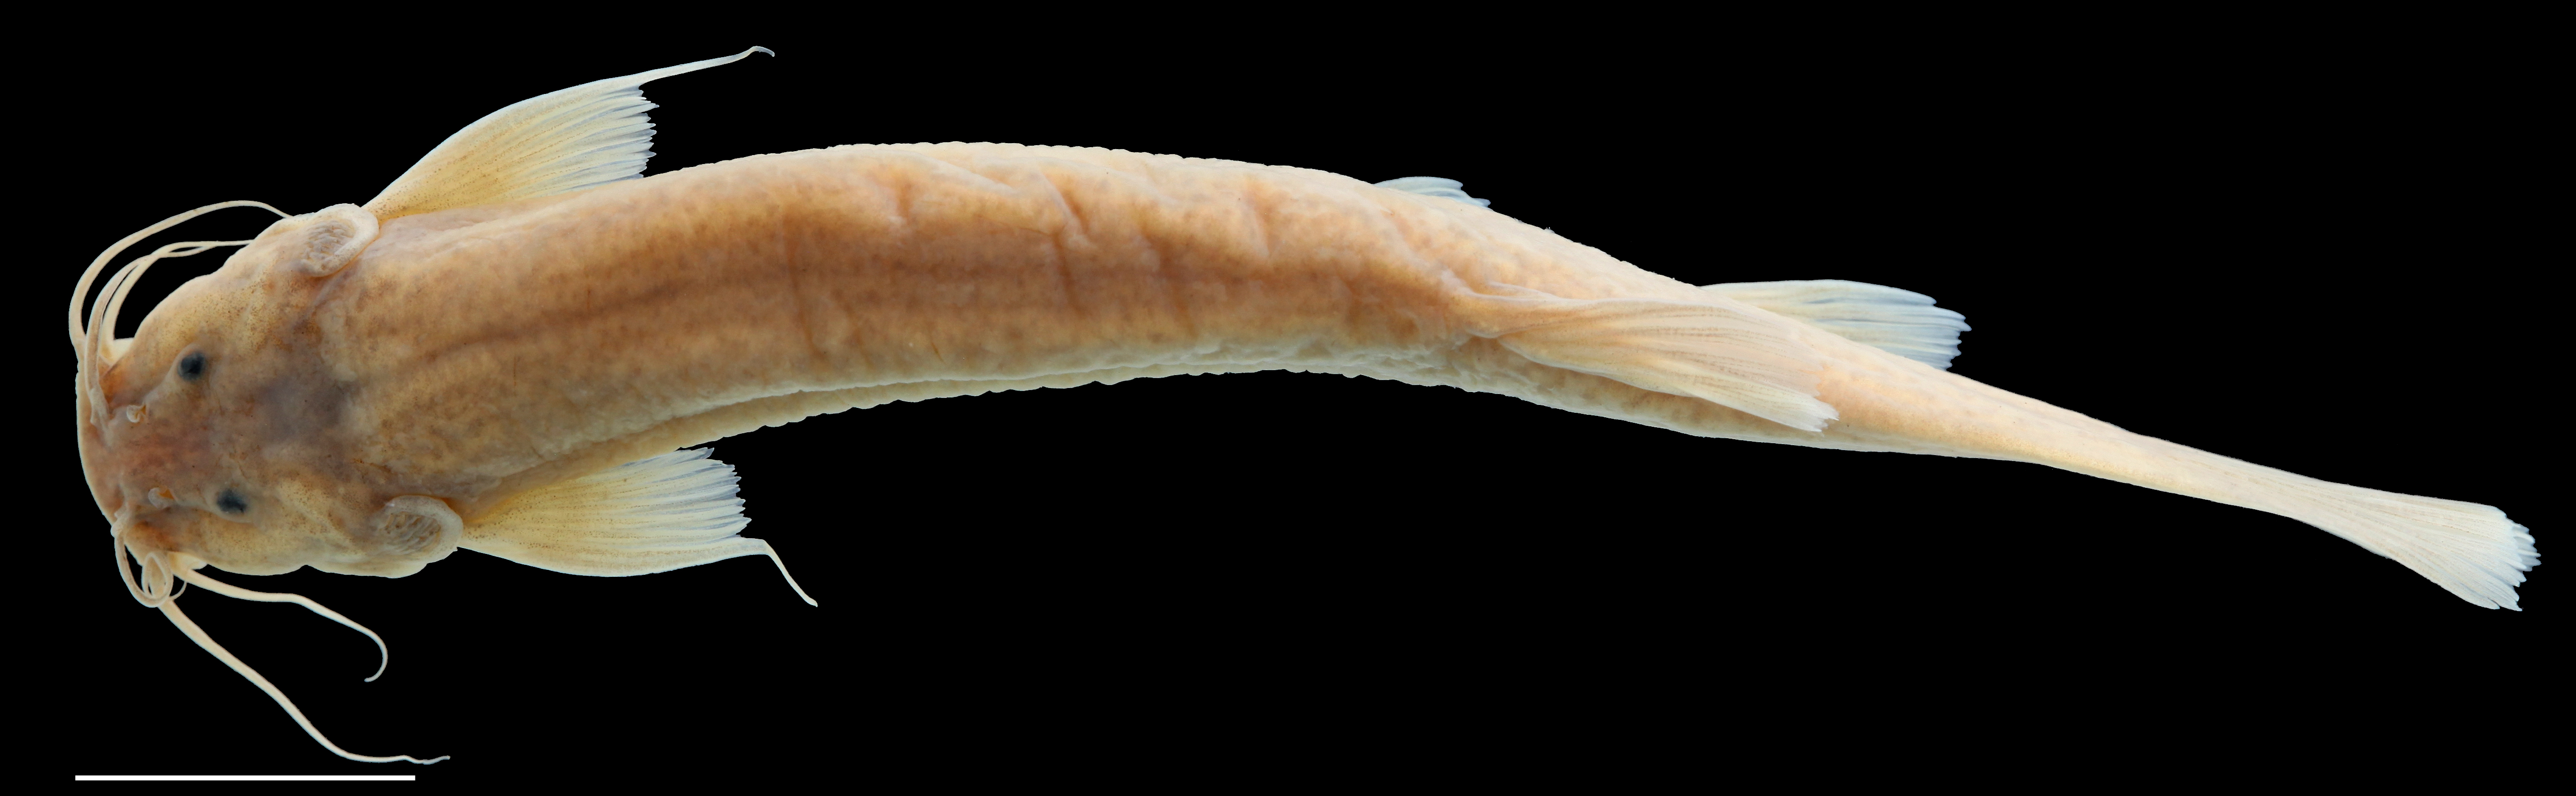 Paratype of <em>Trichomycterus tetuanensis</em>, IAvH-P-12753_Dorsal, 67.6 mm SL (scale bar = 1 cm). Photograph by C. DoNascimiento.